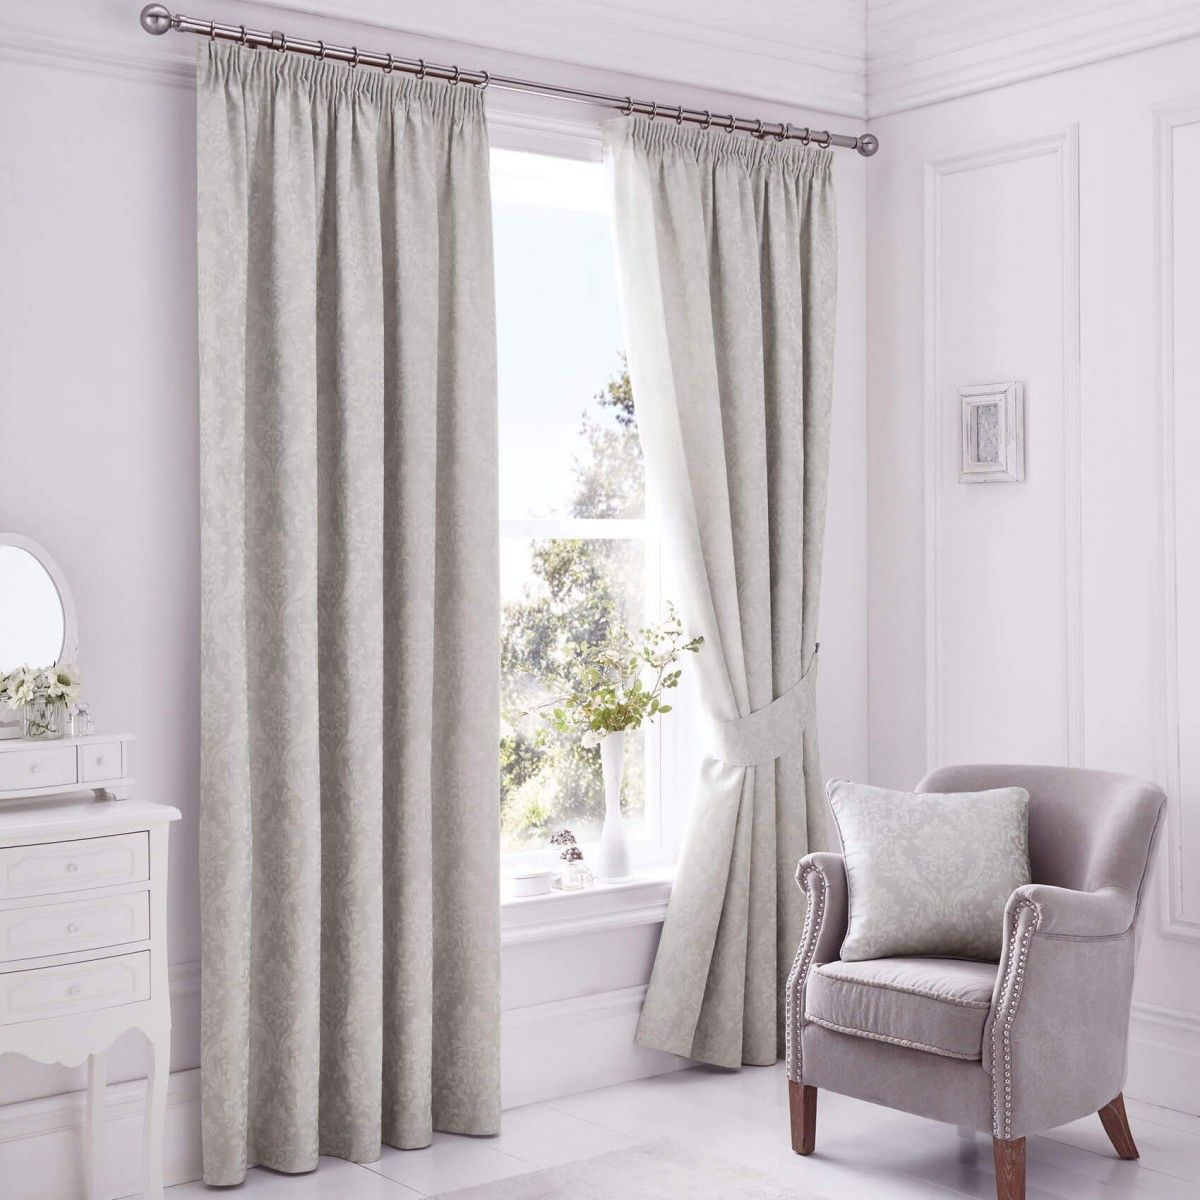 An extravagant and stunning jacquard design curtain